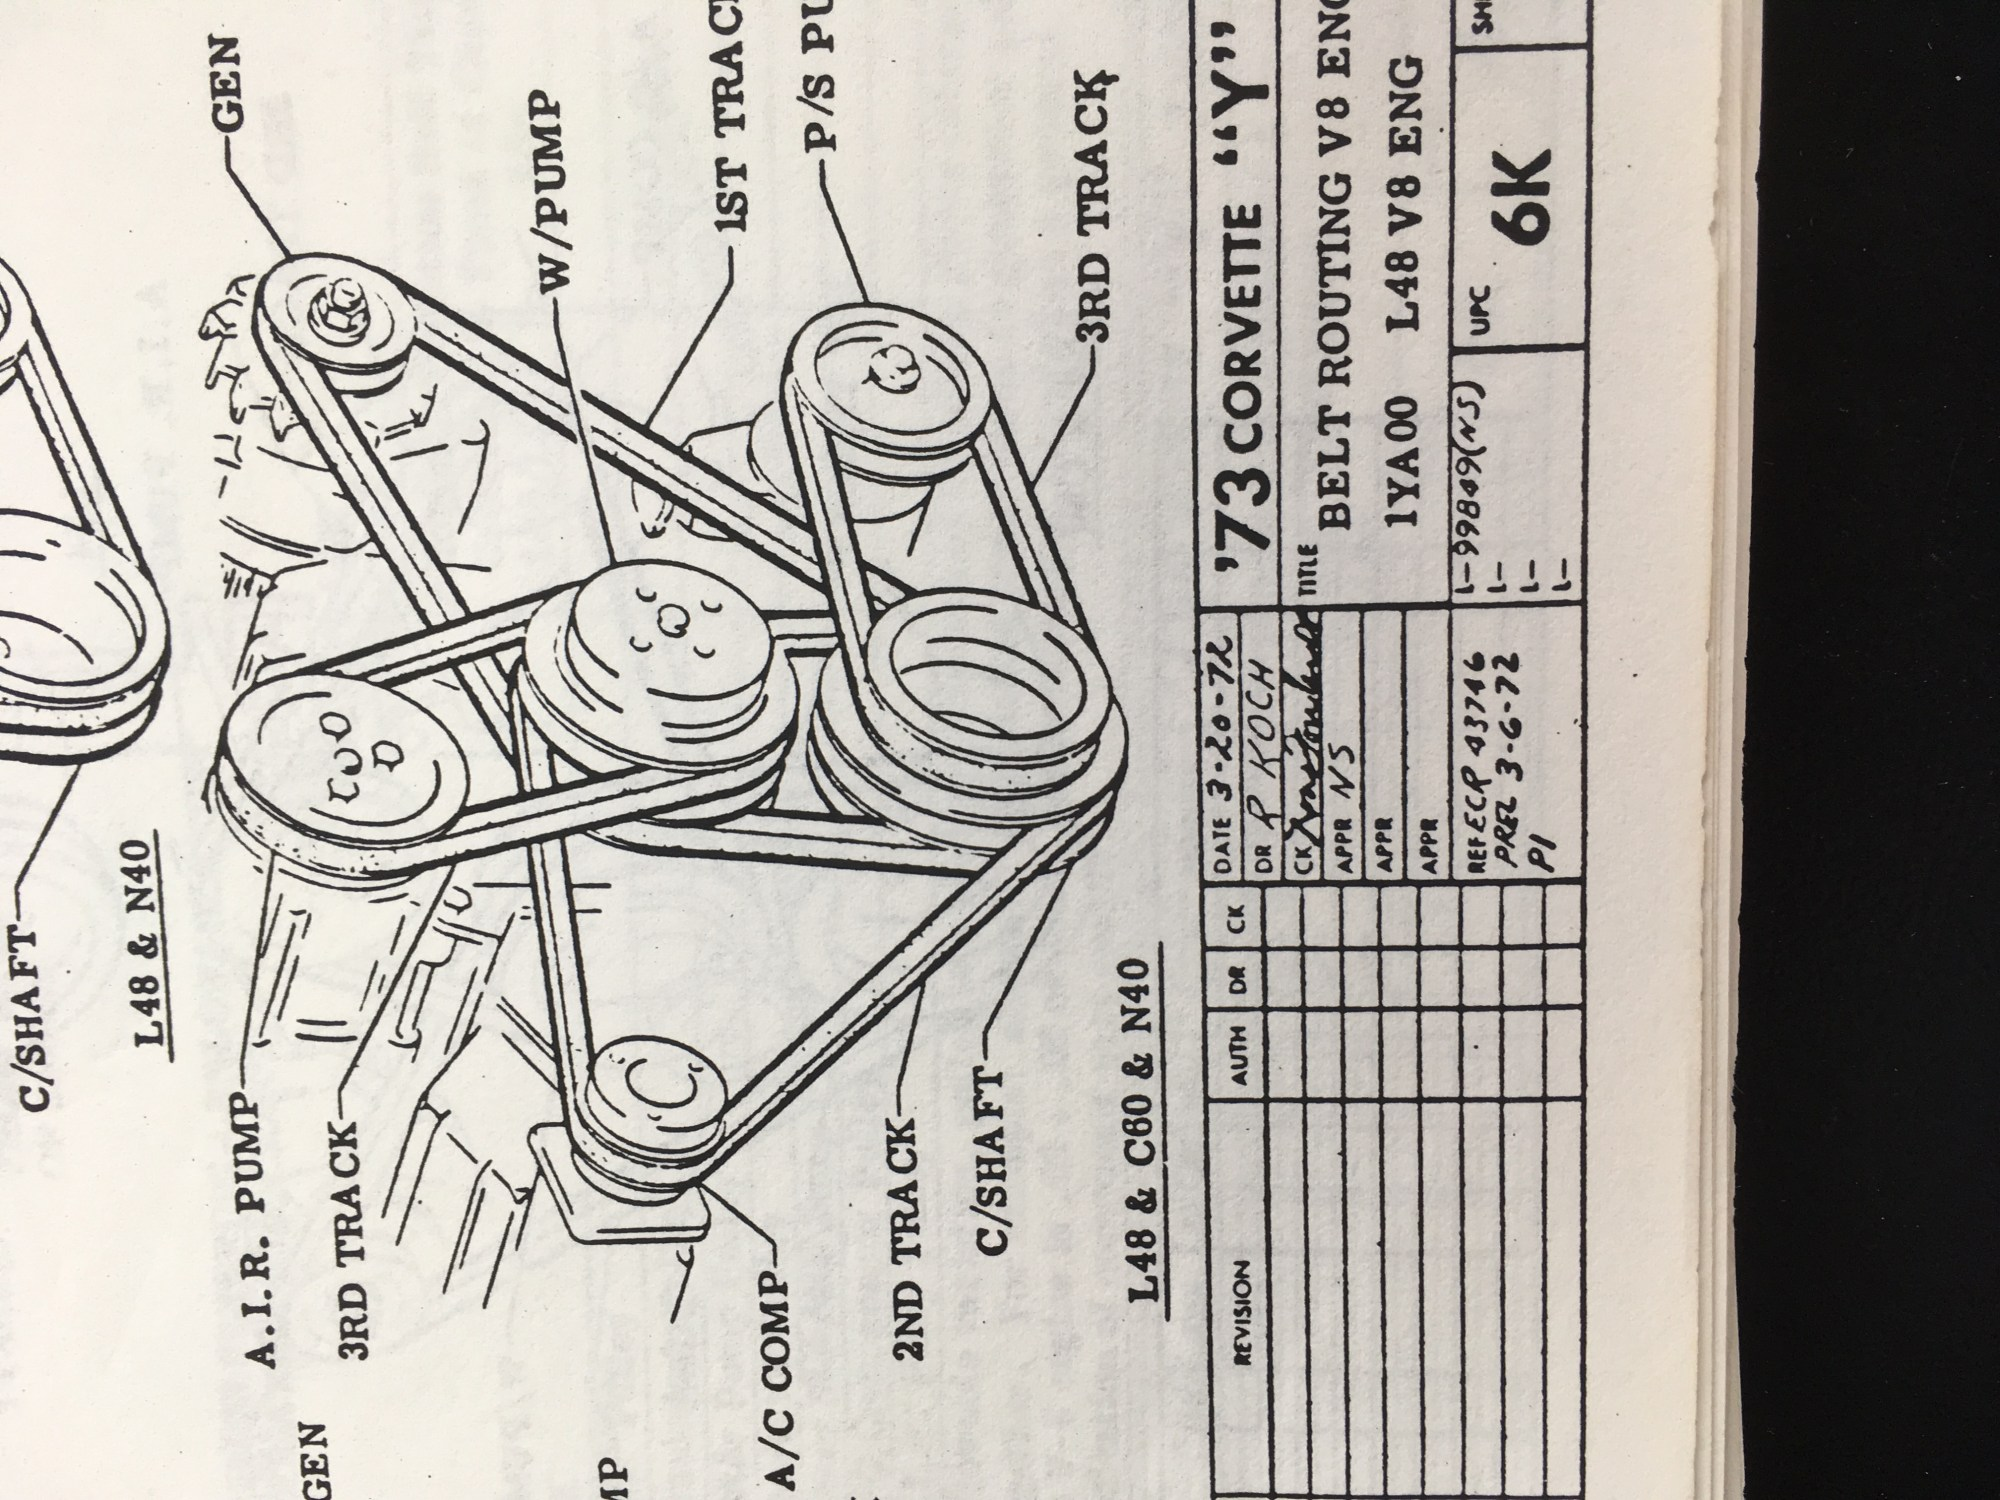 hight resolution of chevrolet corvette belt diagram wiring diagram expert 1998 chevy corvette serpentine belt diagram 1998 chevy corvette belt diagram